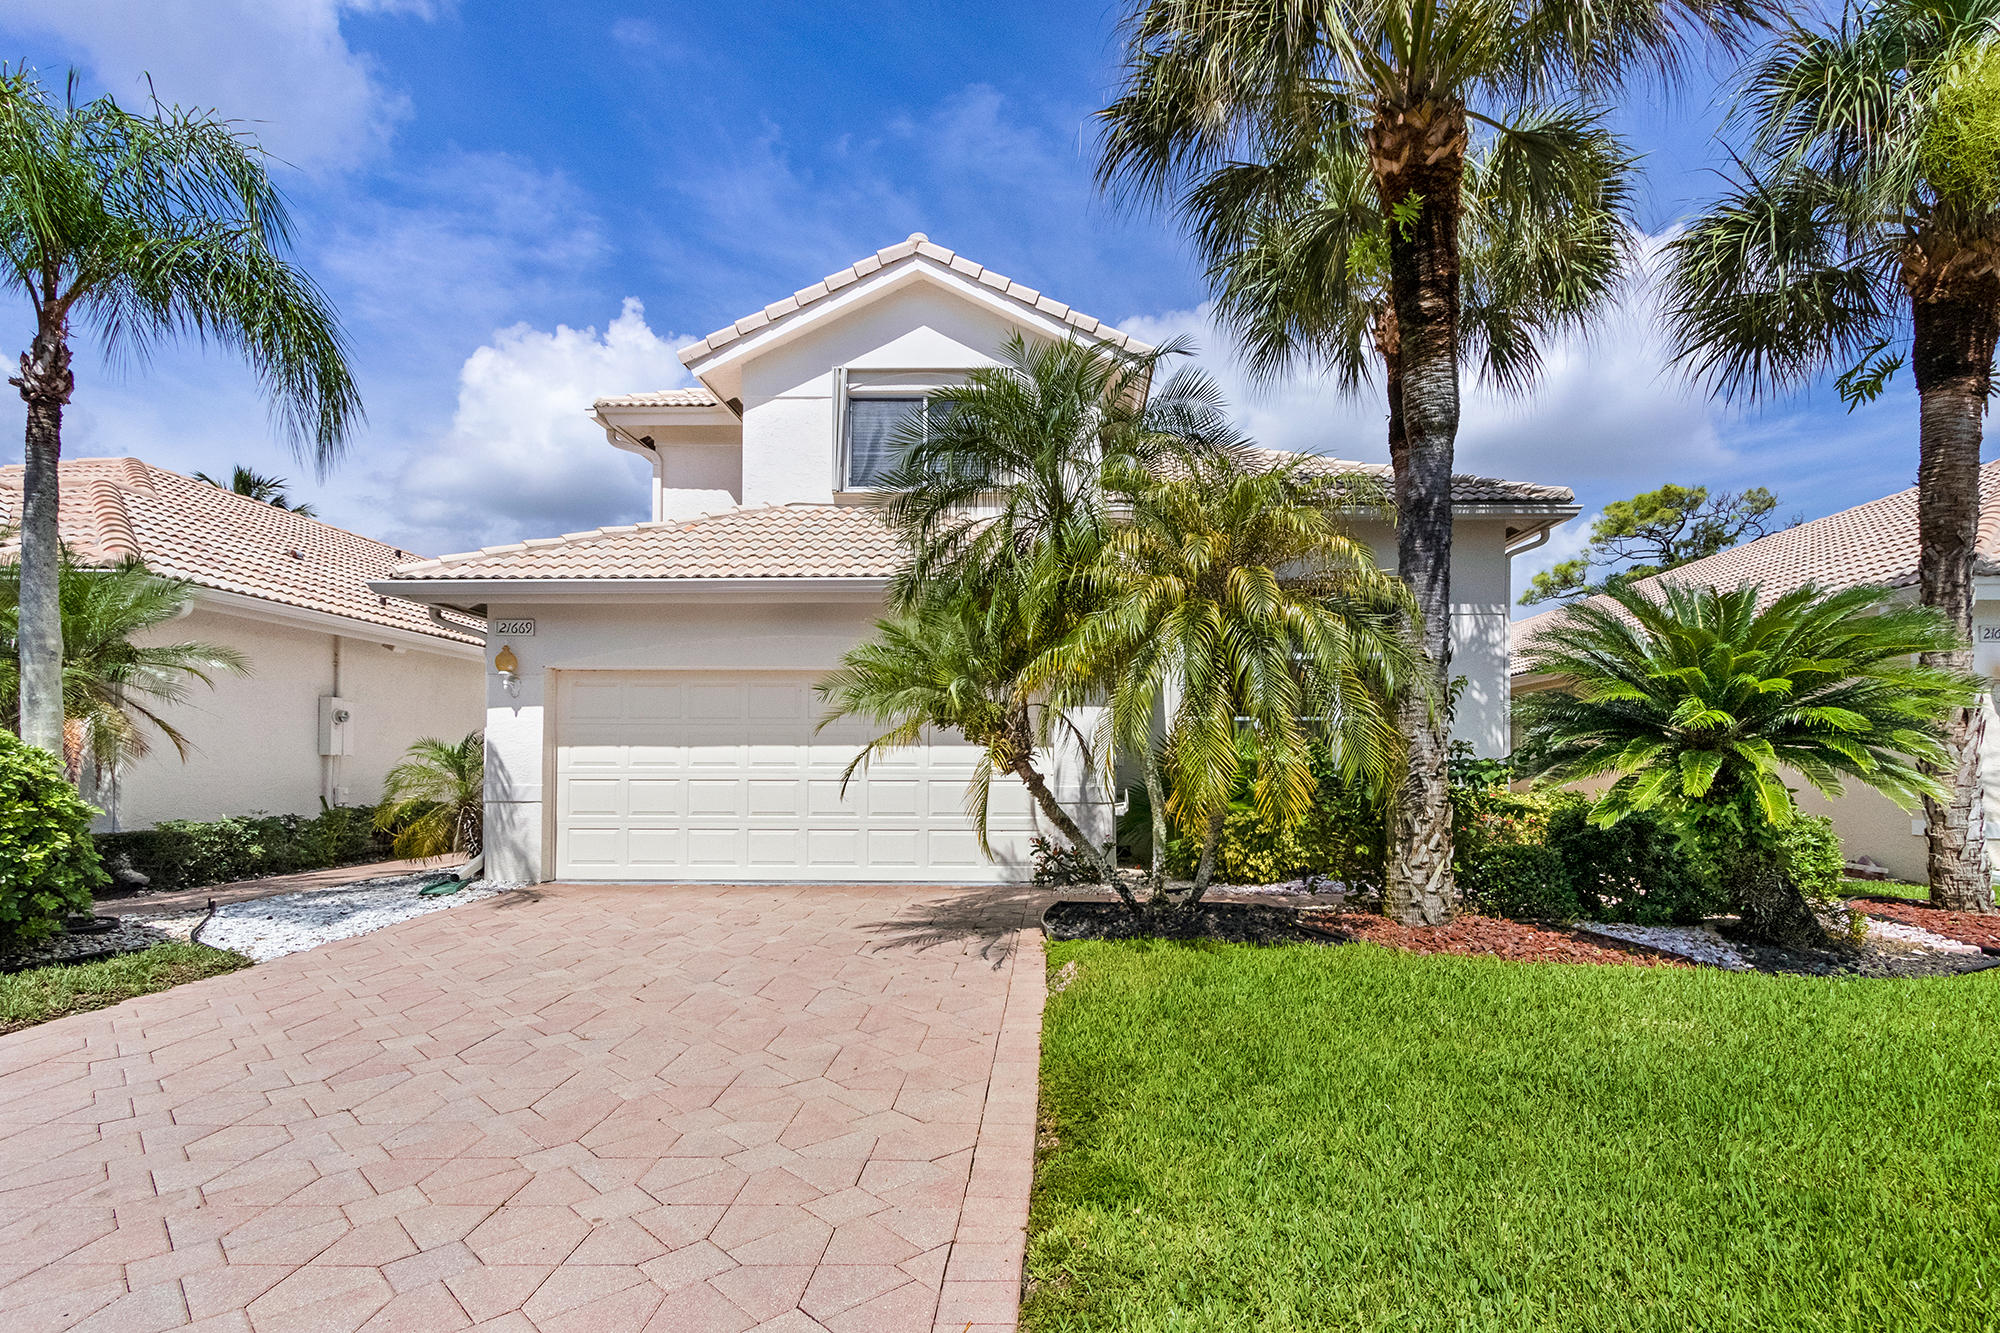 Home for sale in Hammock Point Boca Raton Florida